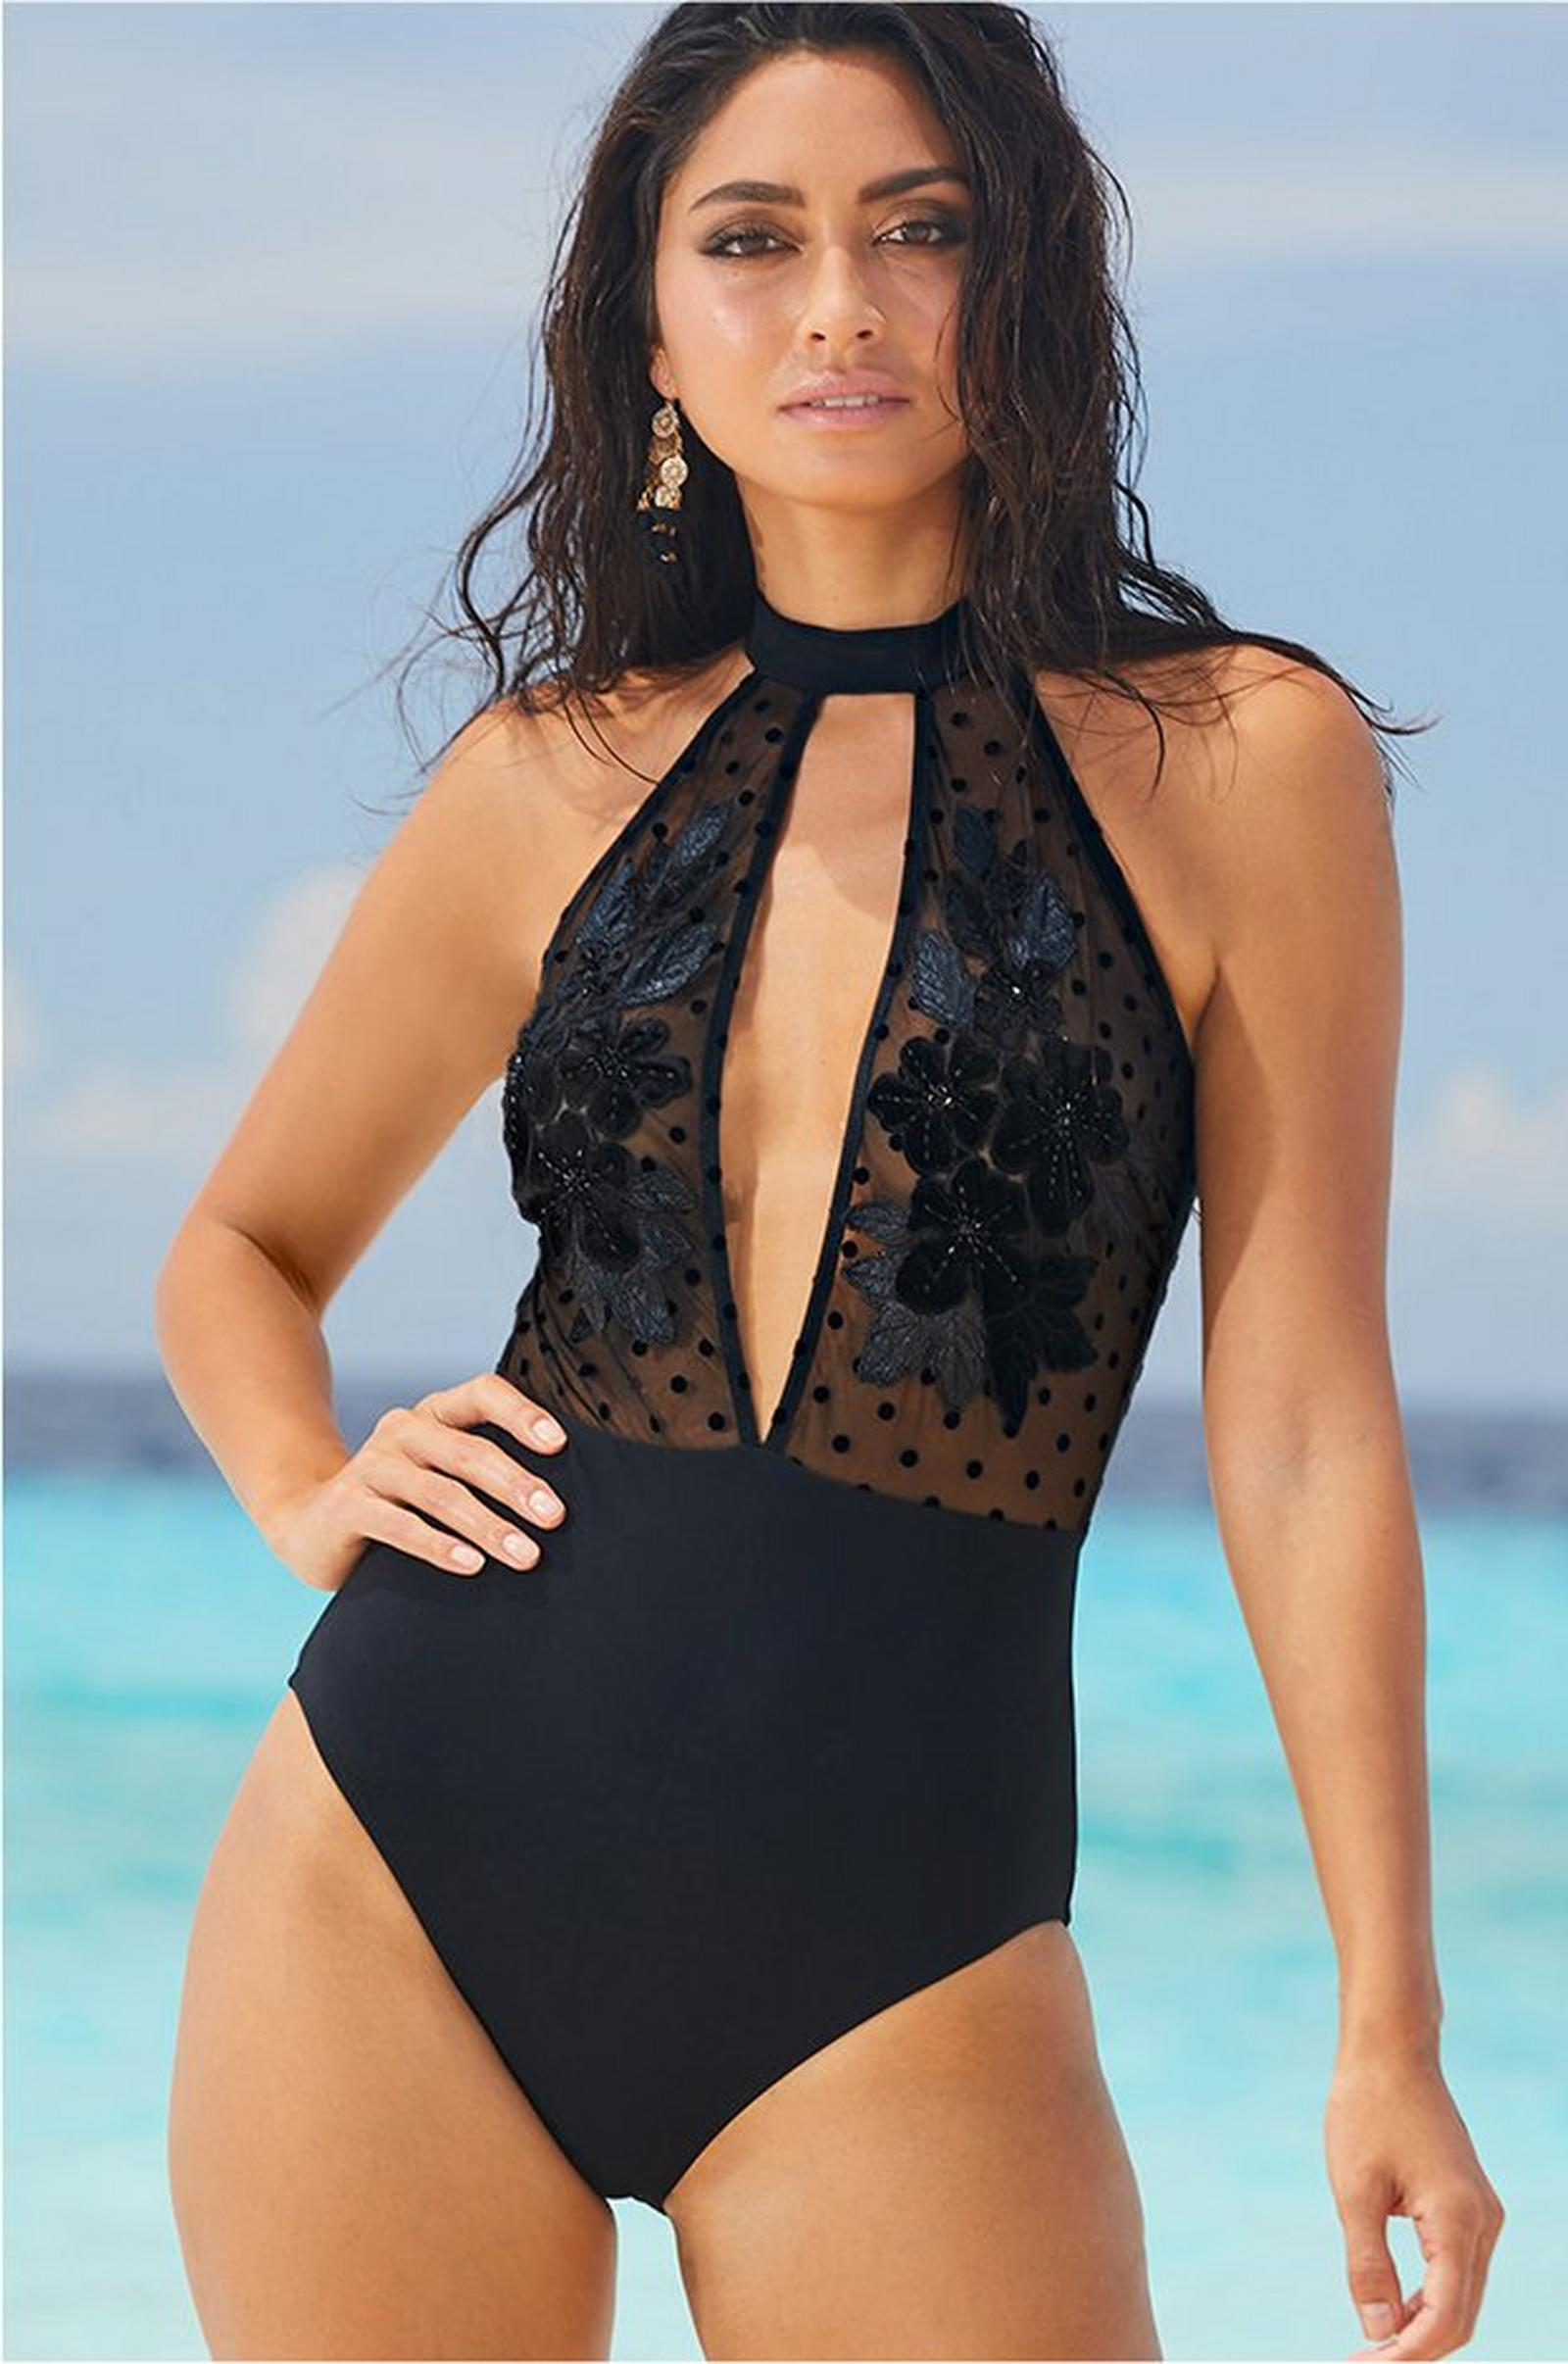 model wearing a sheer mesh floral embellished one-piece swimsuit in black.